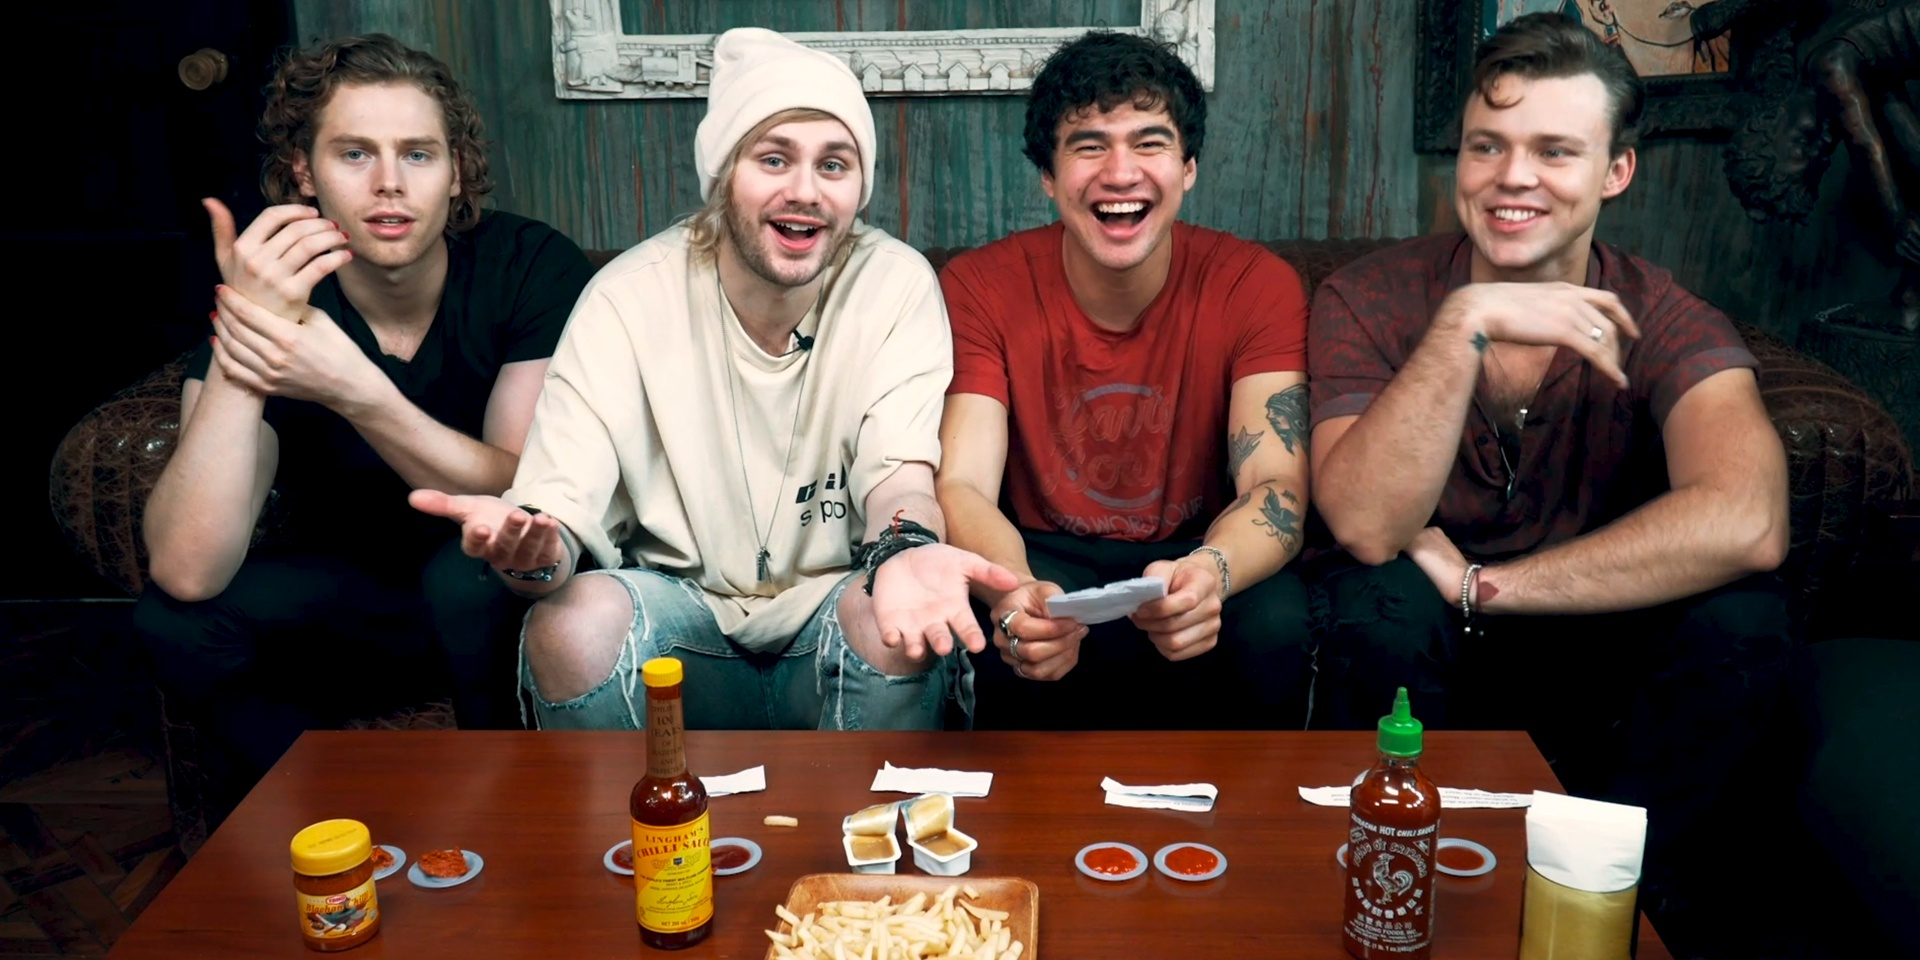 5 Seconds of Summer sample five Singaporean sauces and answer questions about Youngblood – watch